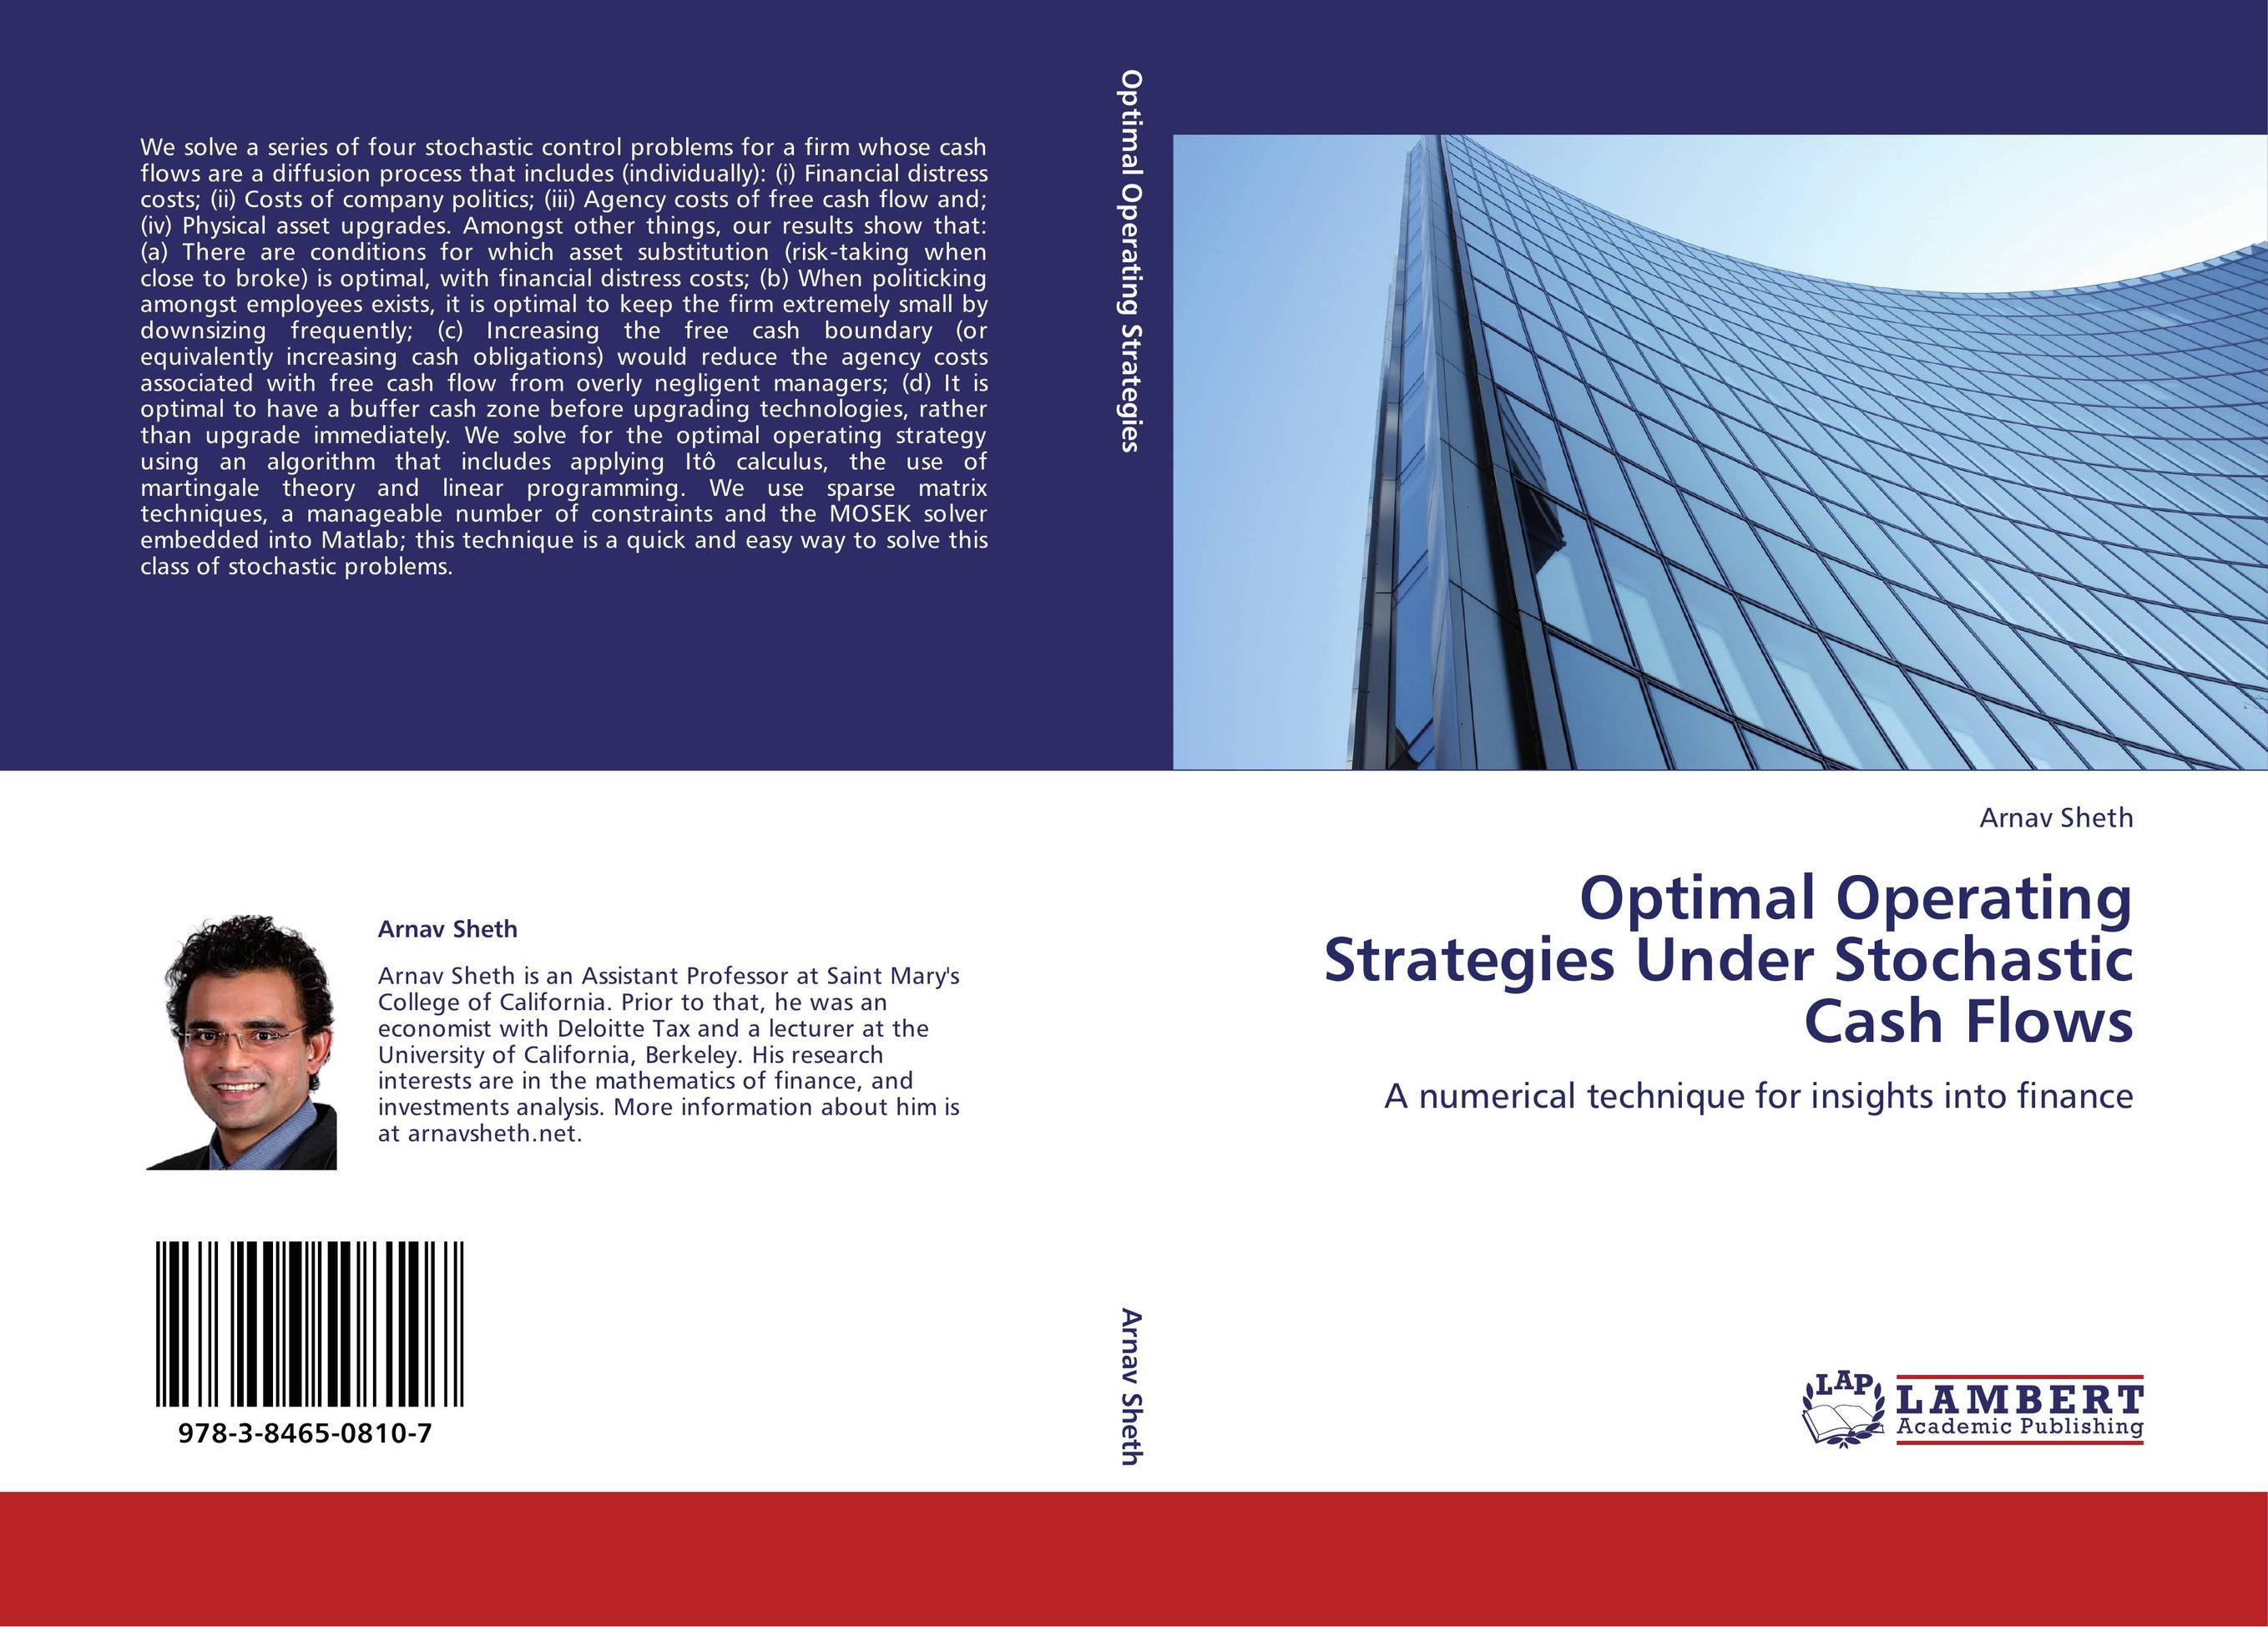 9783846508107 Optimal Operating Strategies Under Stochastic Cash Flows Arnav S